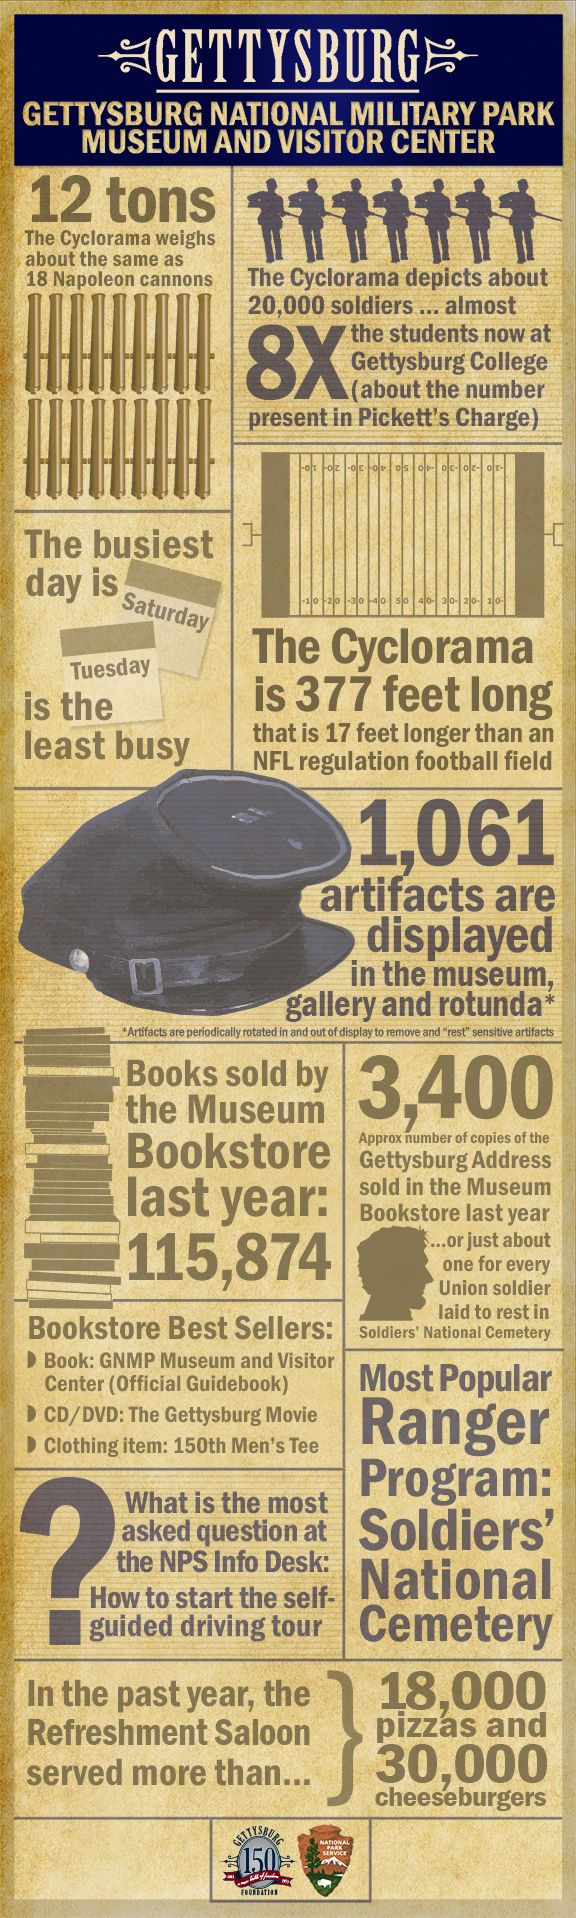 Did you know?  Some fun --and perhaps surprising -- numbers from the Gettysburg National Military Park Museum and Visitor Center #gettysburg #nationalpark #infographic